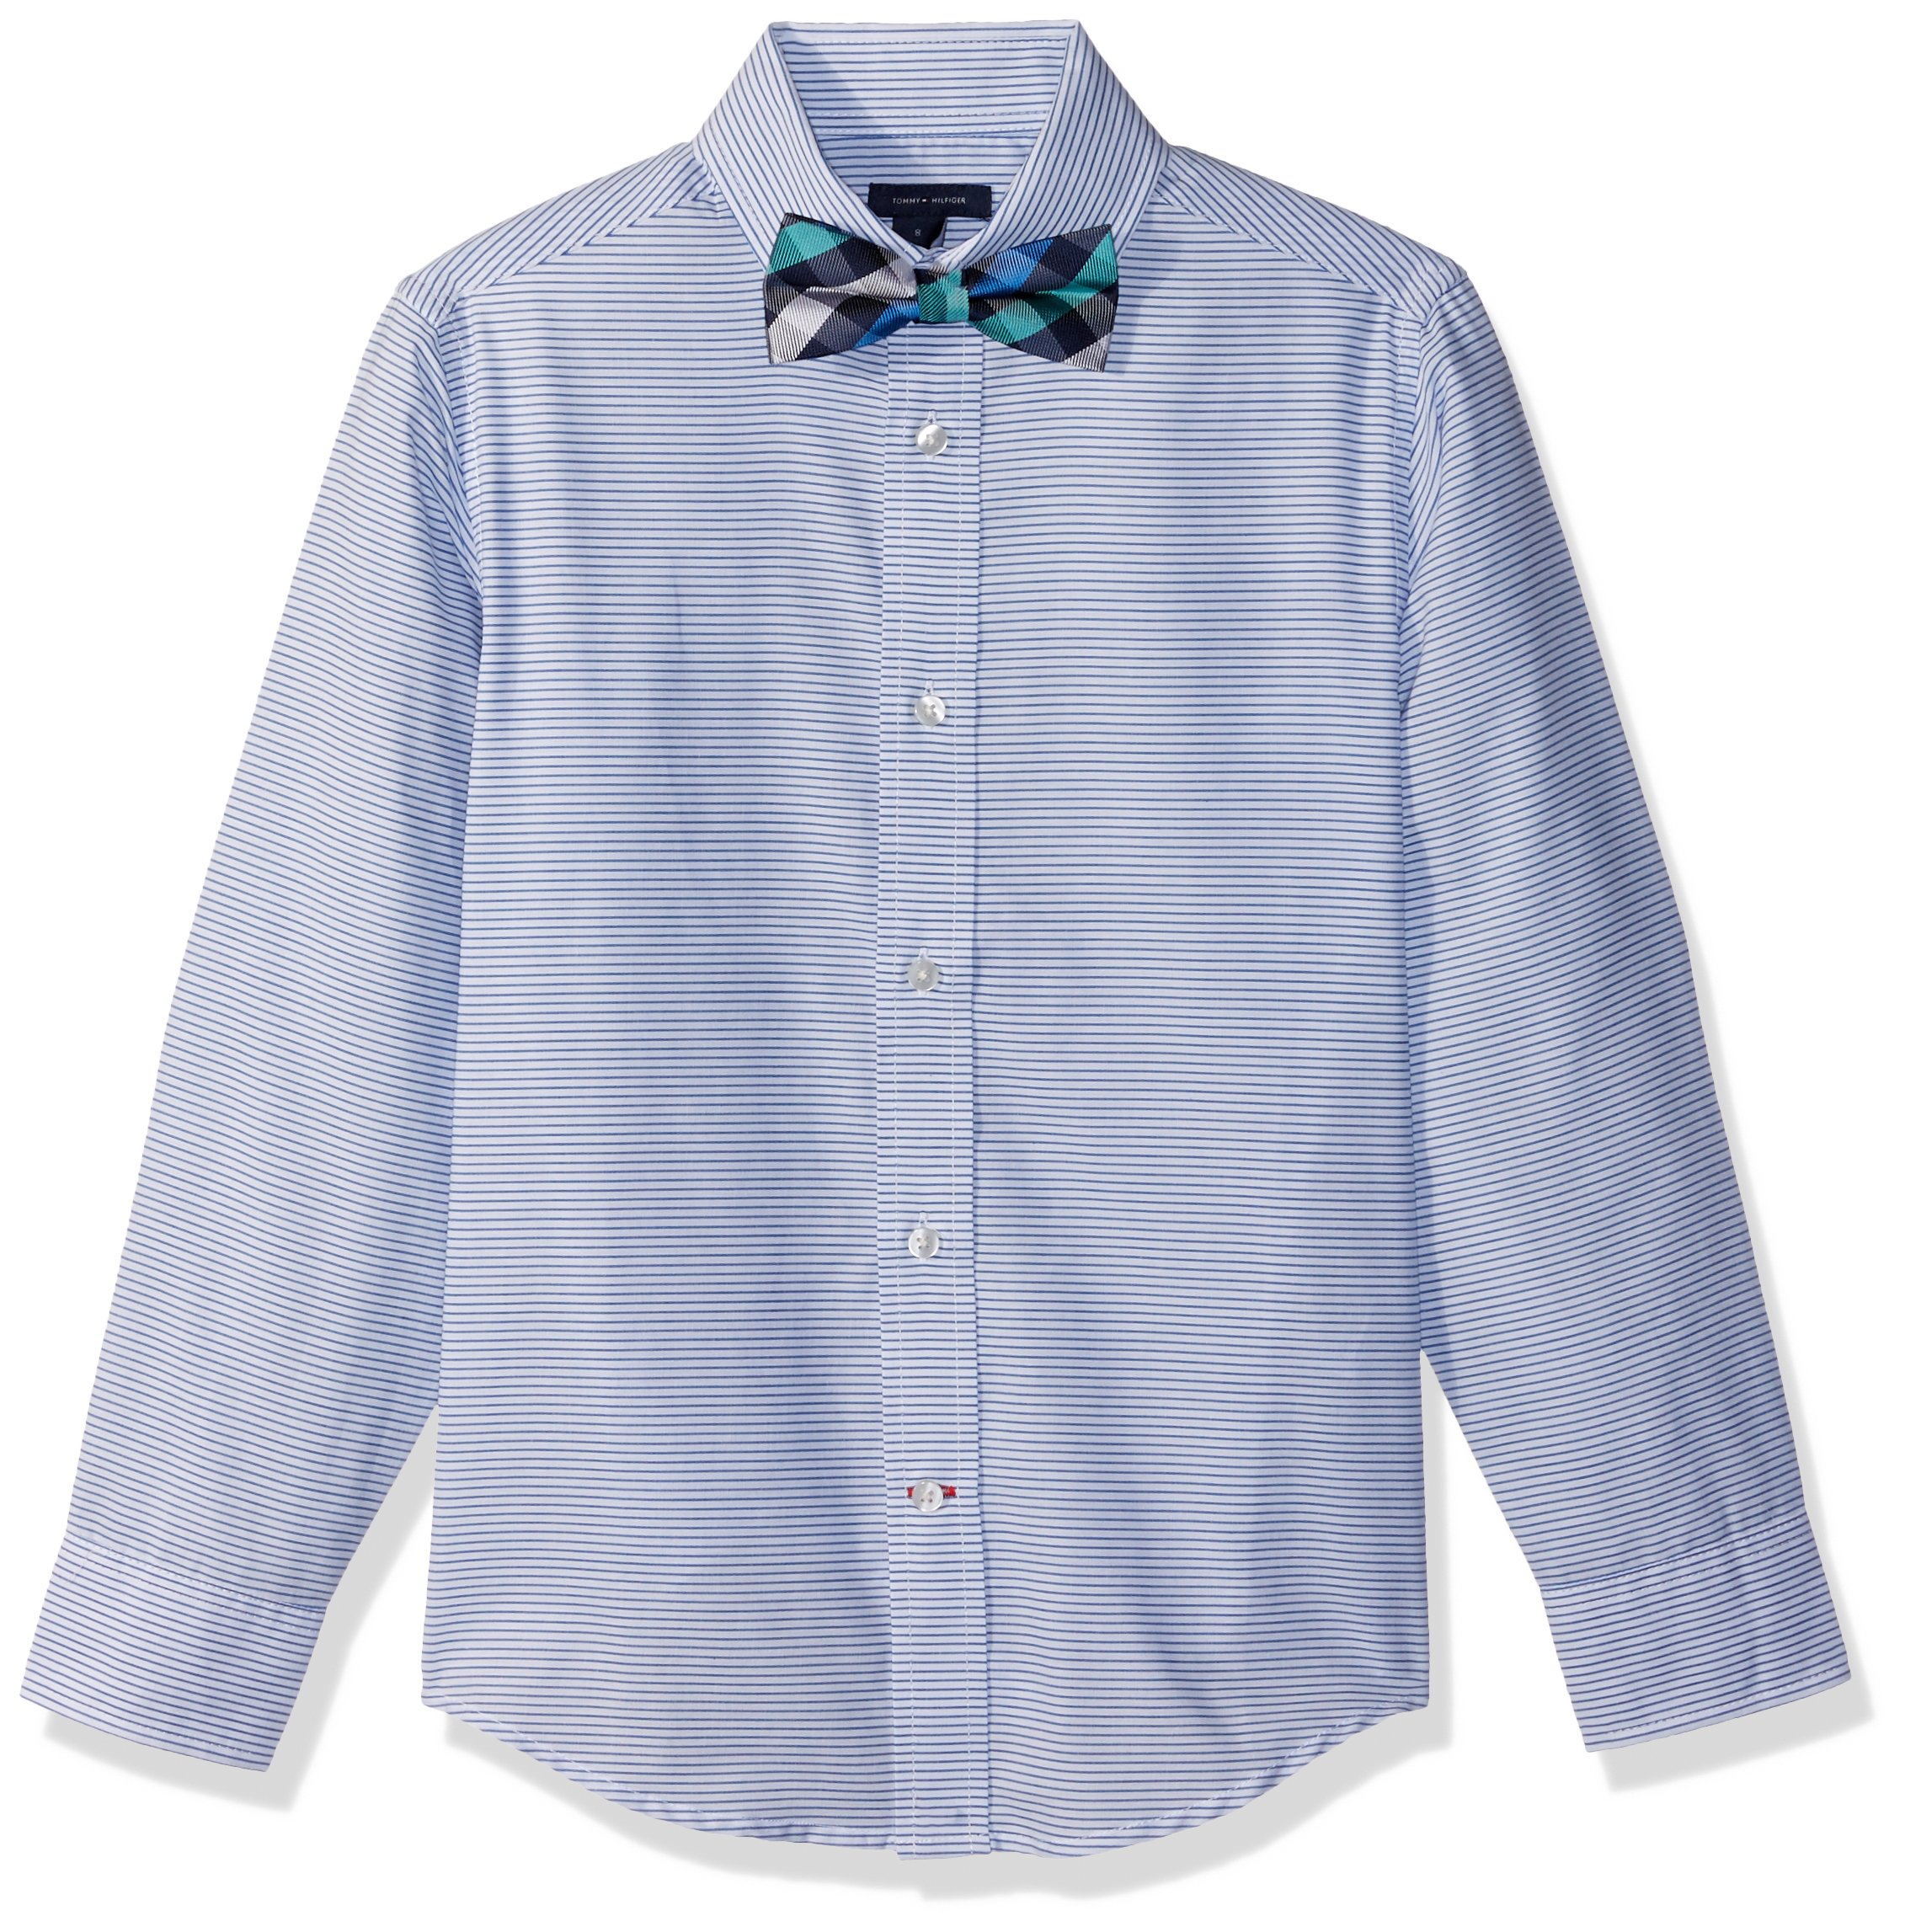 Tommy Hilfiger Boys Long Sleeve Dress Shirt with Bow Tie, White Stripes 16